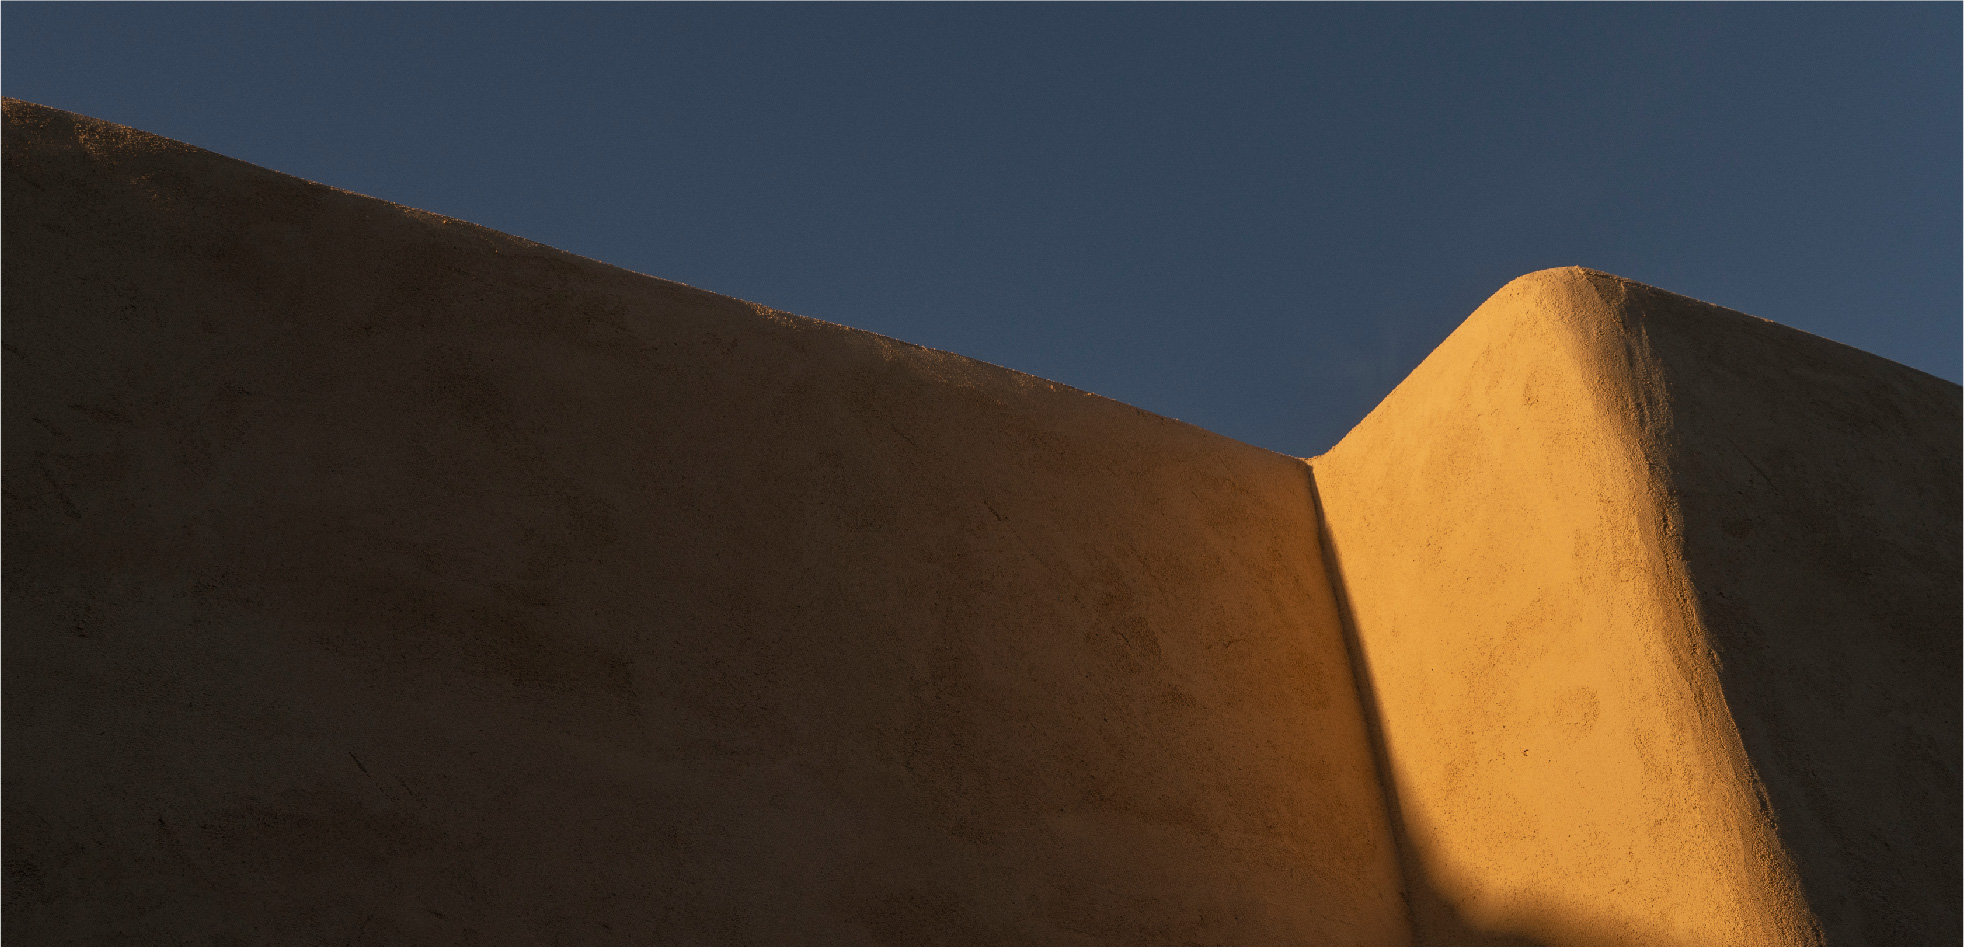 Smooth tan stucco against a blue sky.